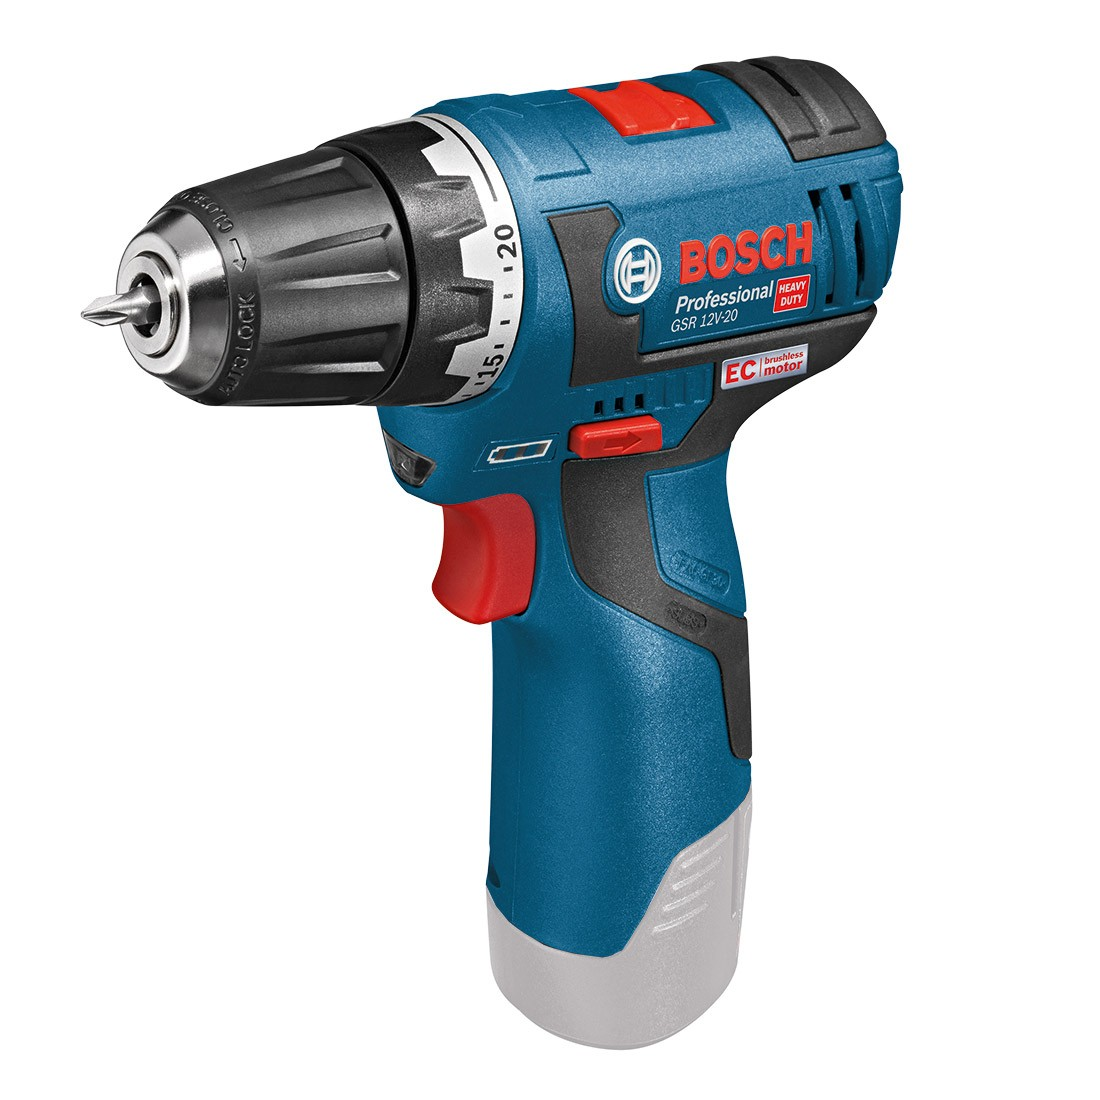 Bosch gsr 10 8 v ec 12v 20 brushless drill driver body - Bosch 10 8 v ...